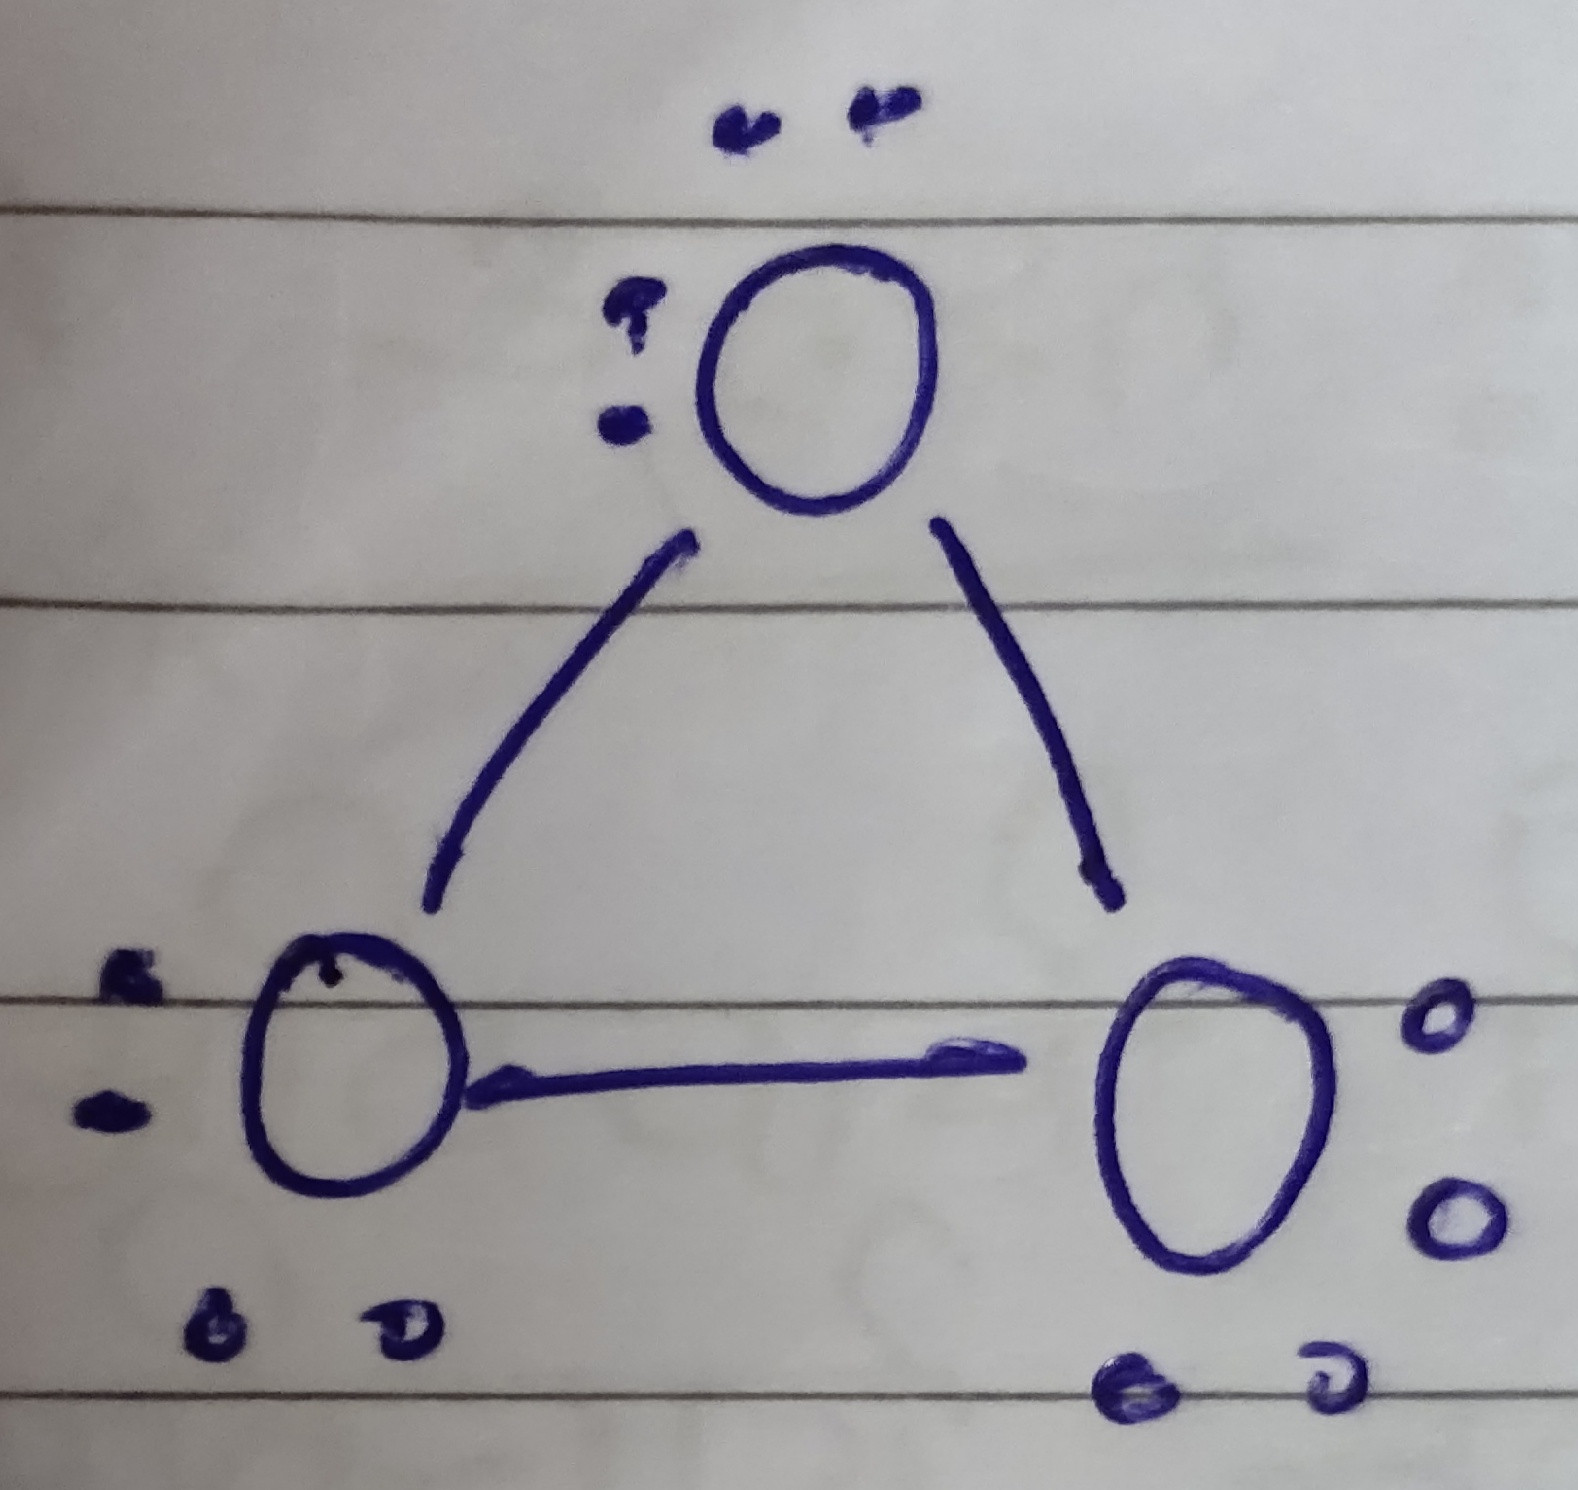 lewis dot structures example questions